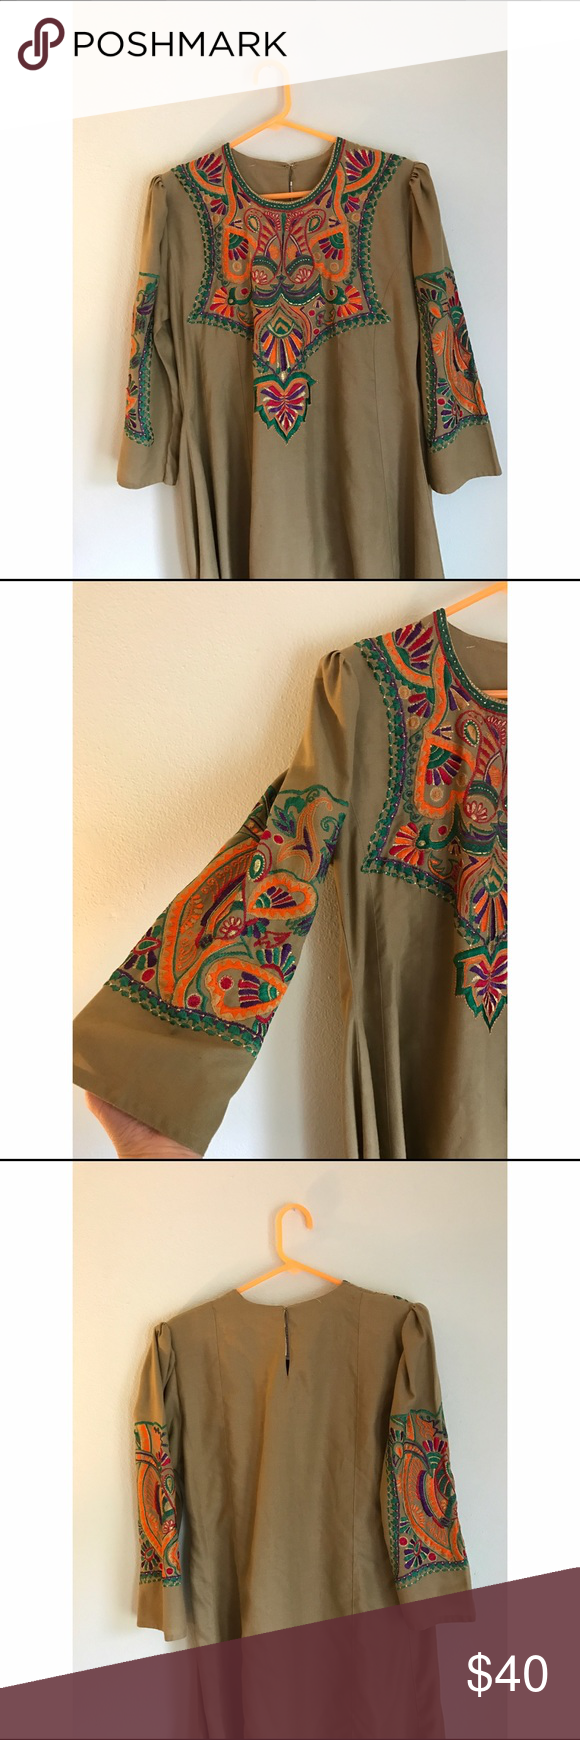 """Omersons Embroidered Dress Gorgeous vintage embroidered dress! No size on tag, 43"""" long, bust laid flat is 18"""", width is 23"""". Sleeves are 19"""". Original tag on clothing (no price shown). There are shoulder pads and a keyhole clasp in back. No flaws! Omersons Dresses Midi"""